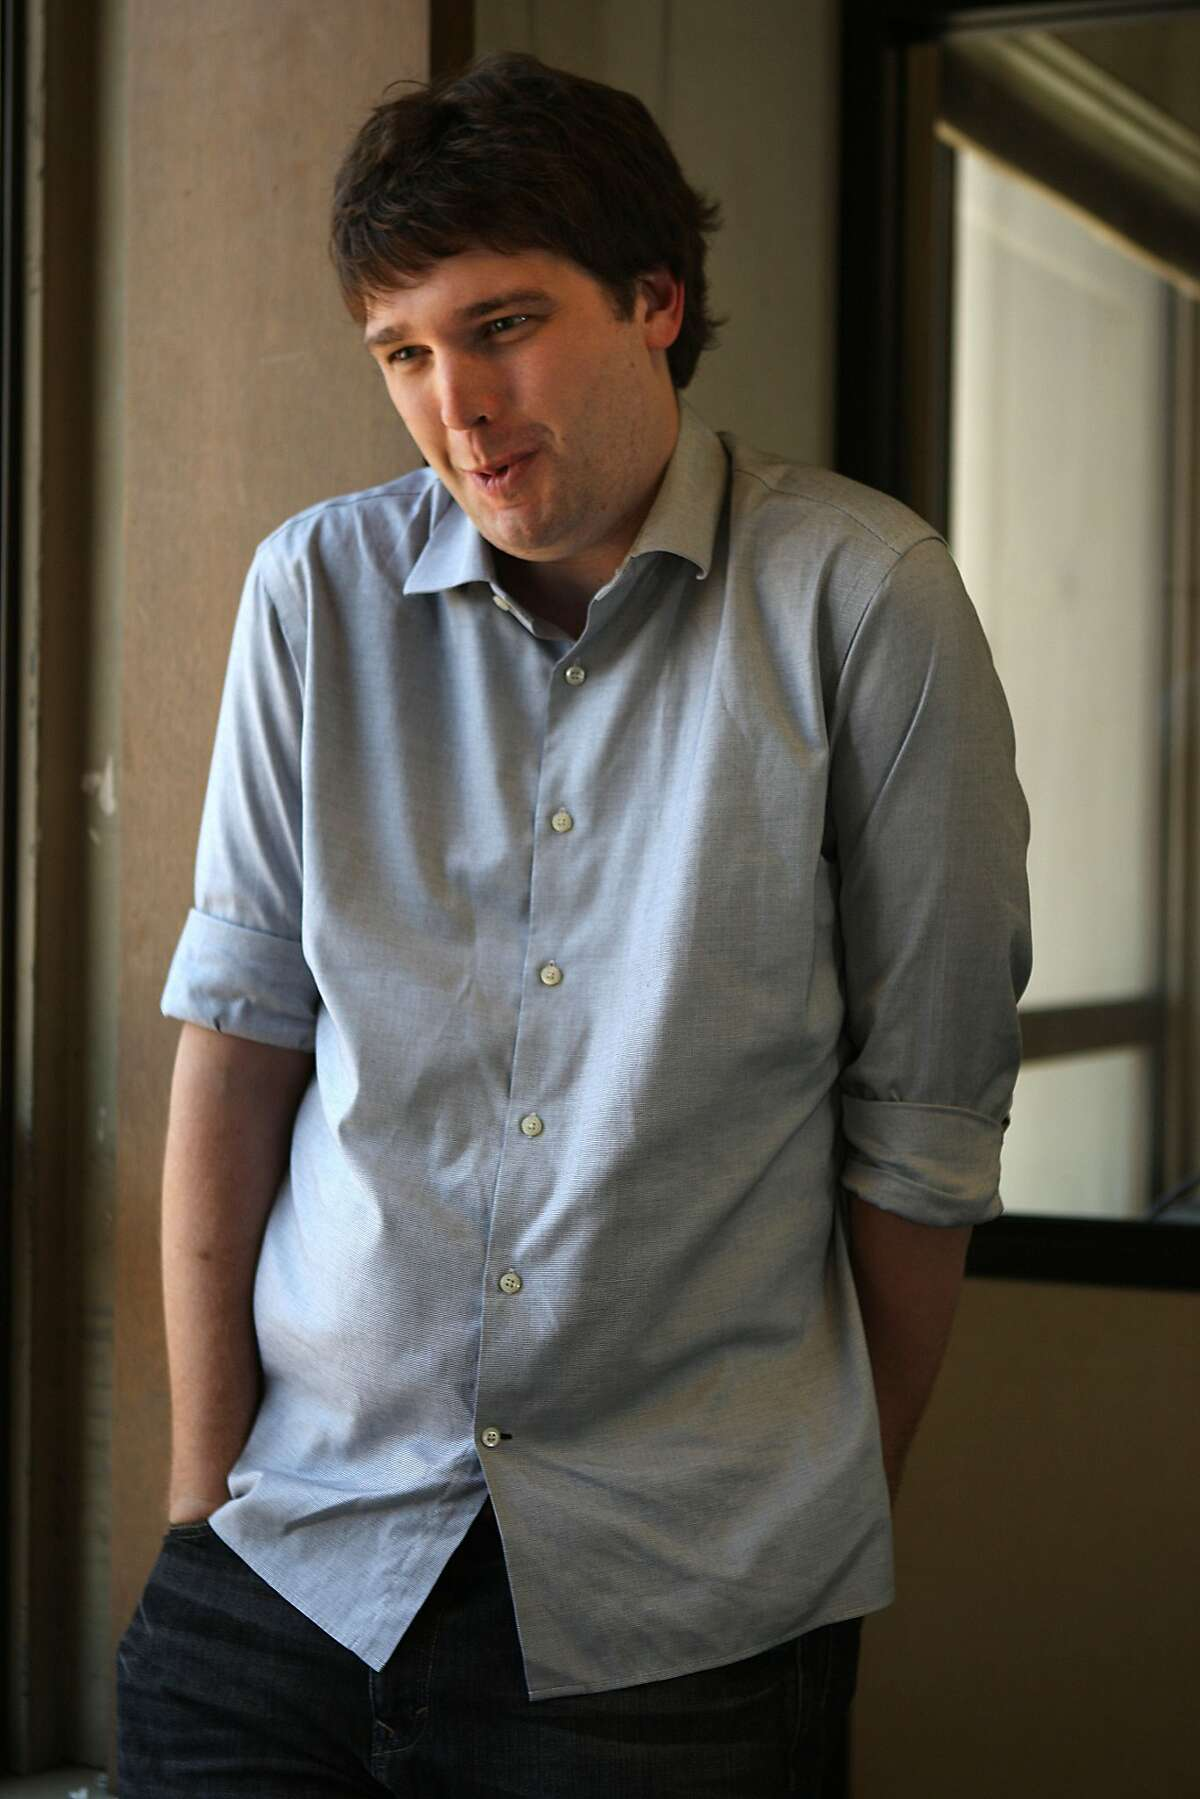 Andrew Mason, the founder of Groupon, an internet coupon service in San Francisco, Calif., on Thursday, July 29, 2010.